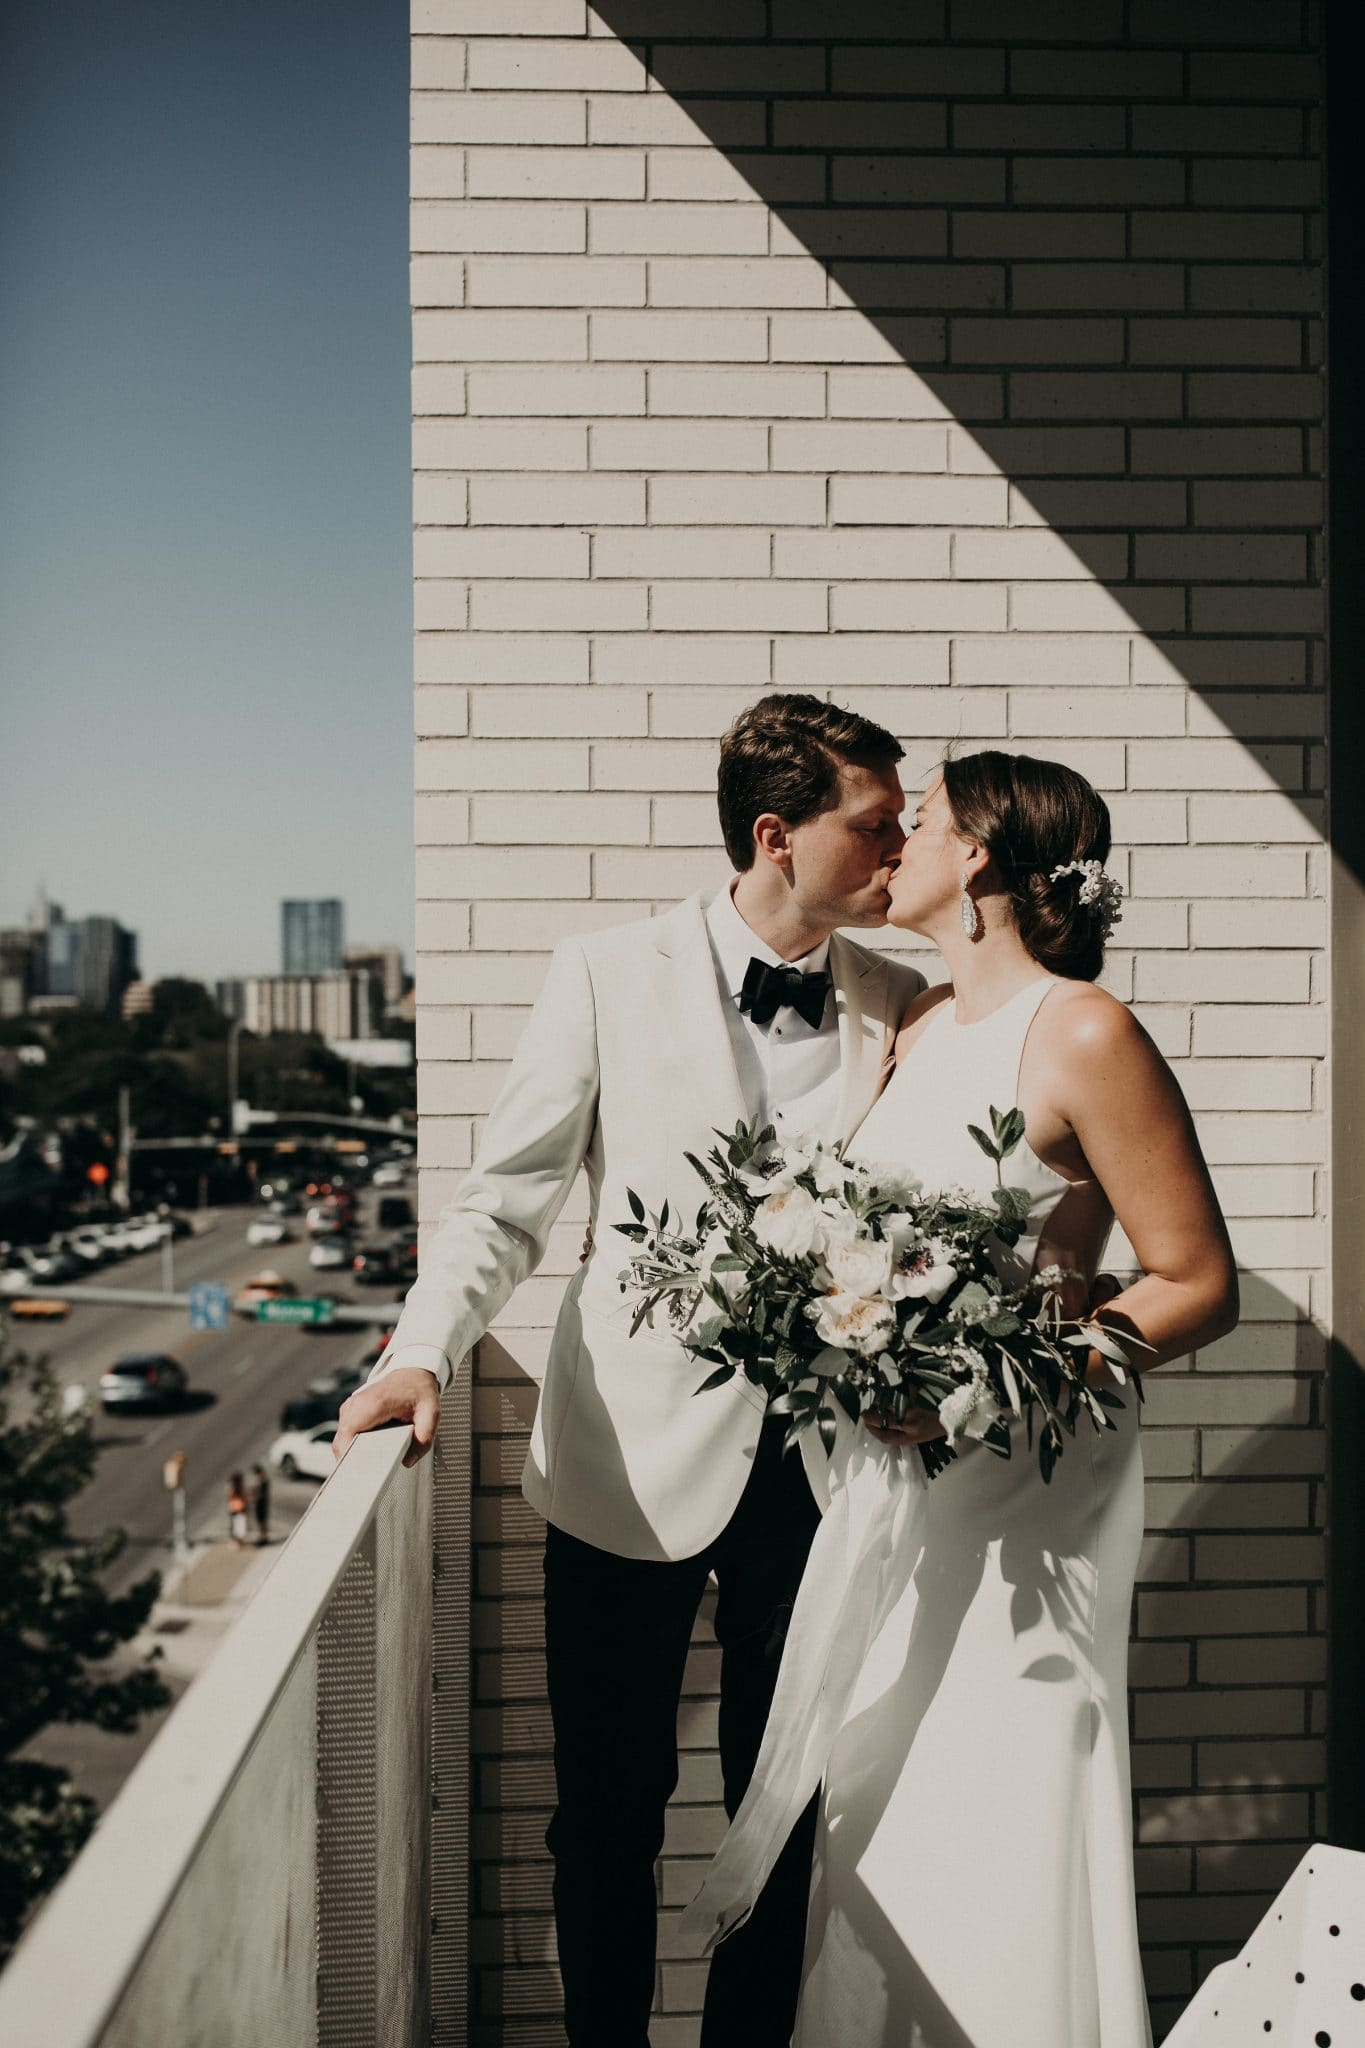 Bride holding her bouquet as she kisses the groom while standing on a balcony in downtown Austin, Texas. Photograph by Austin, Texas wedding photographer Nikk Nguyen.